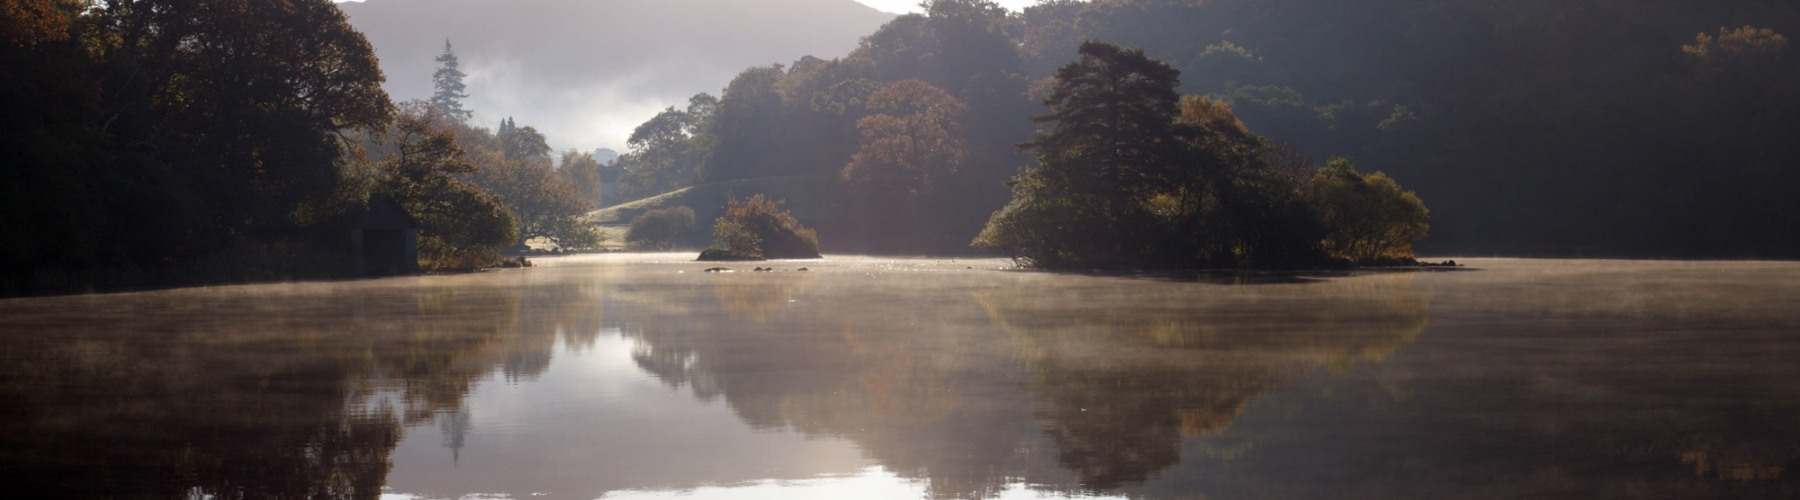 P0031-Shimmering-mist-on-Ridal-Water